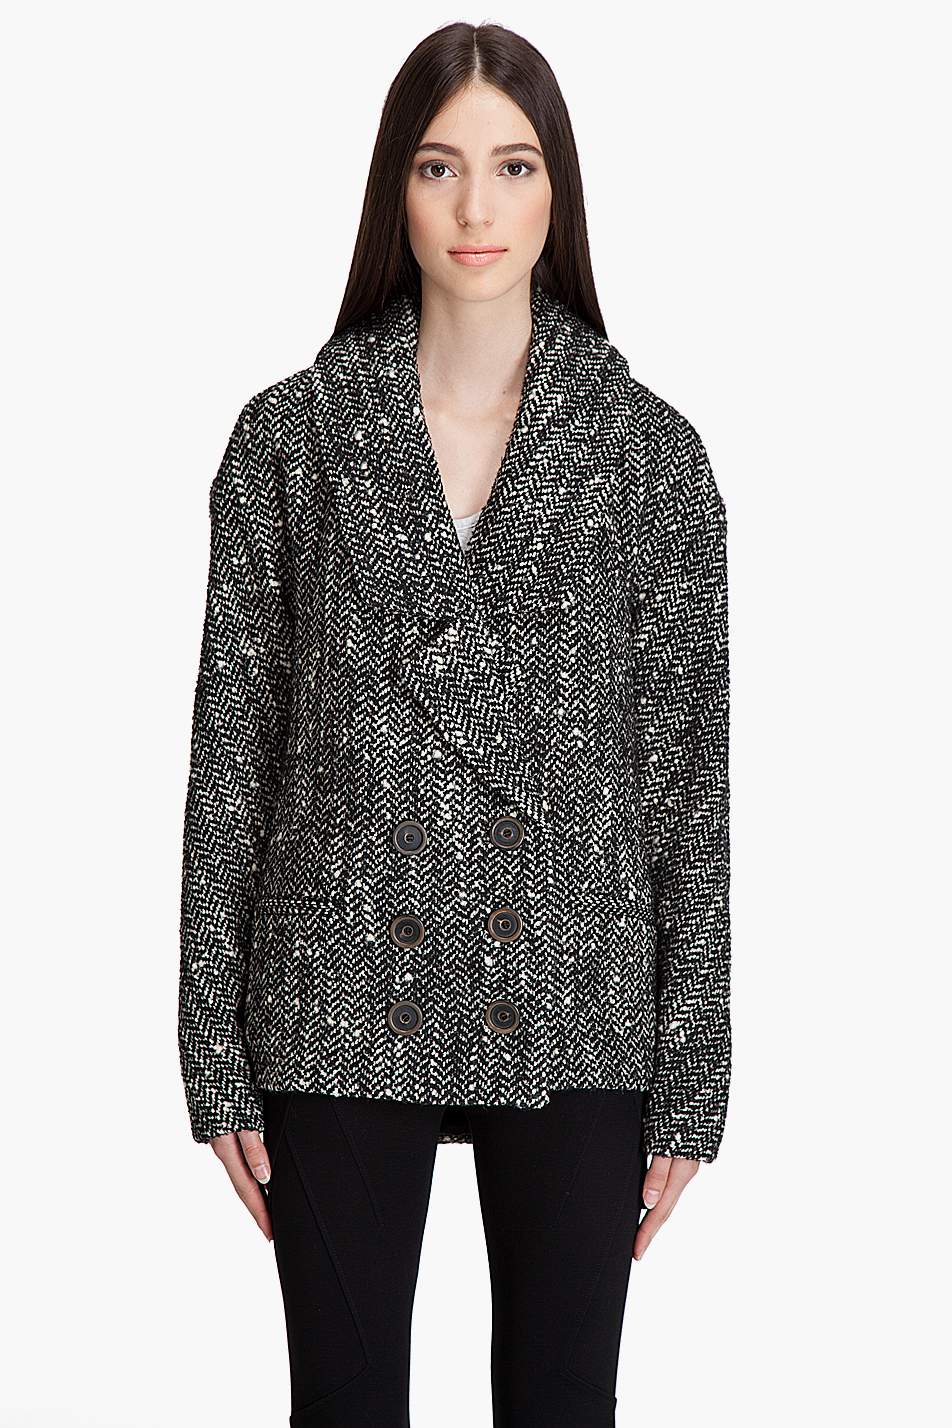 Smythe Cocoon Jacket In Black Lyst